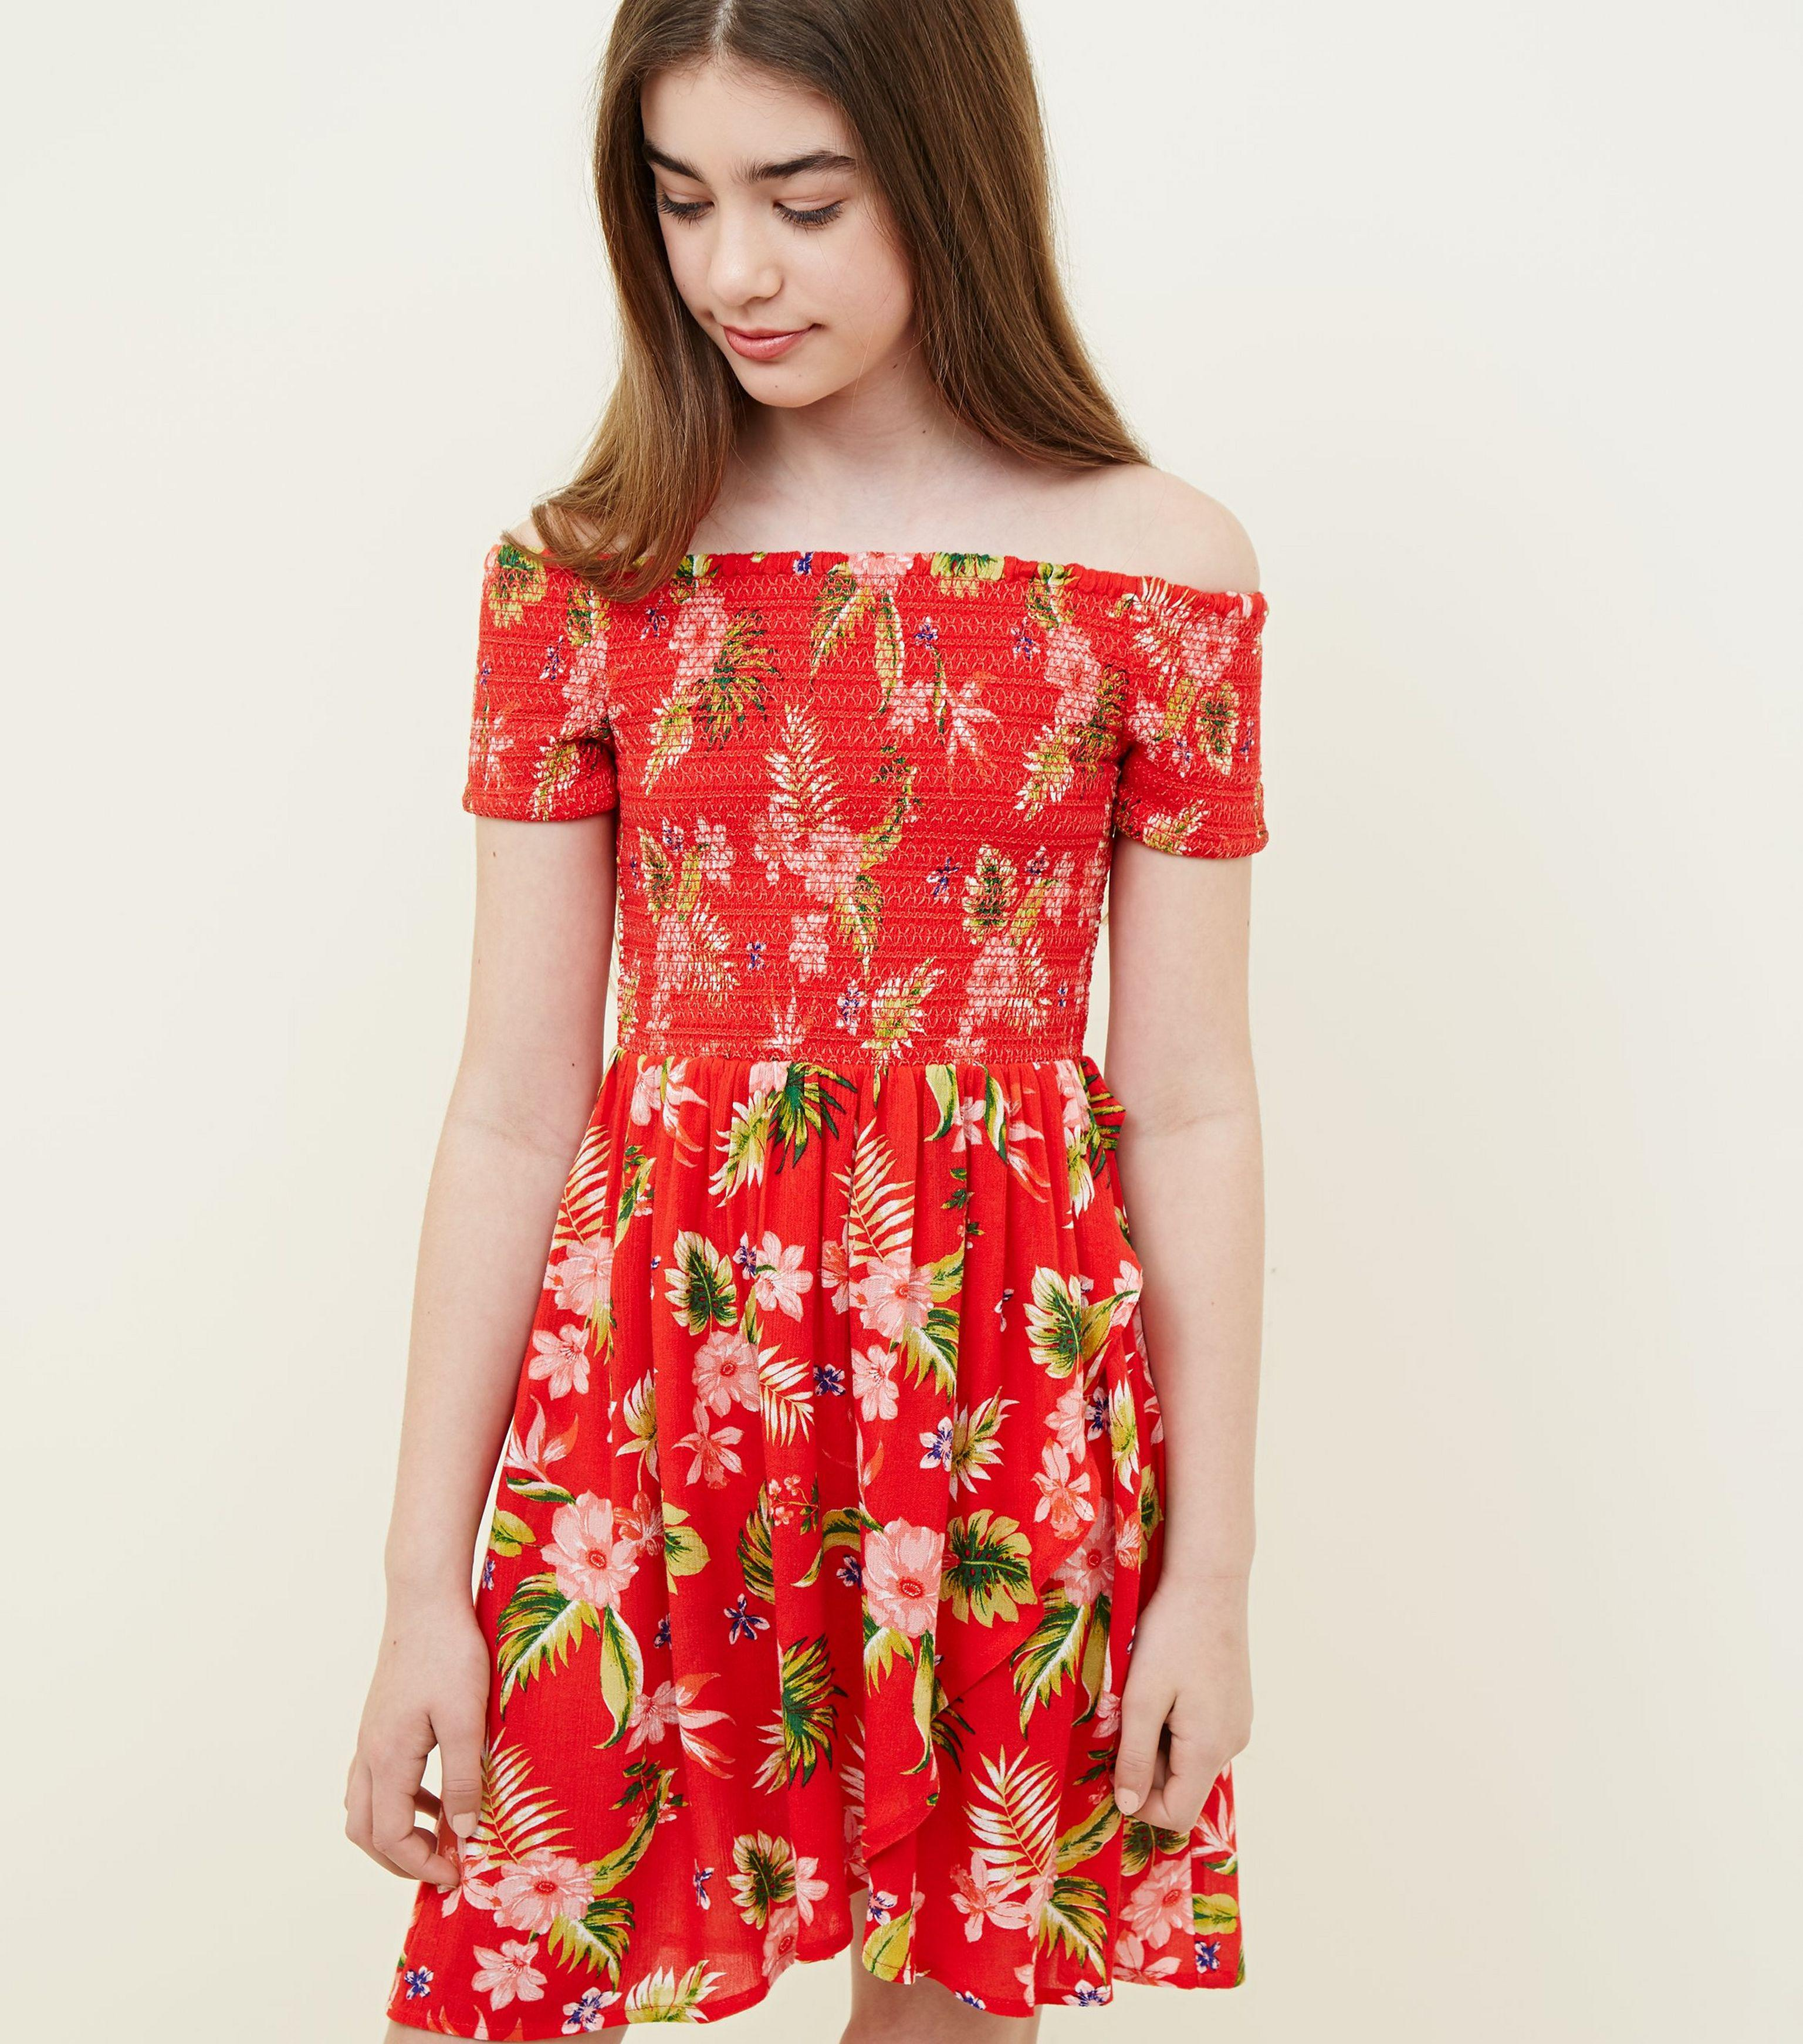 685f0c6f8bde New Look Girls Red Tropical Floral Print Bardot Dress in Red - Lyst